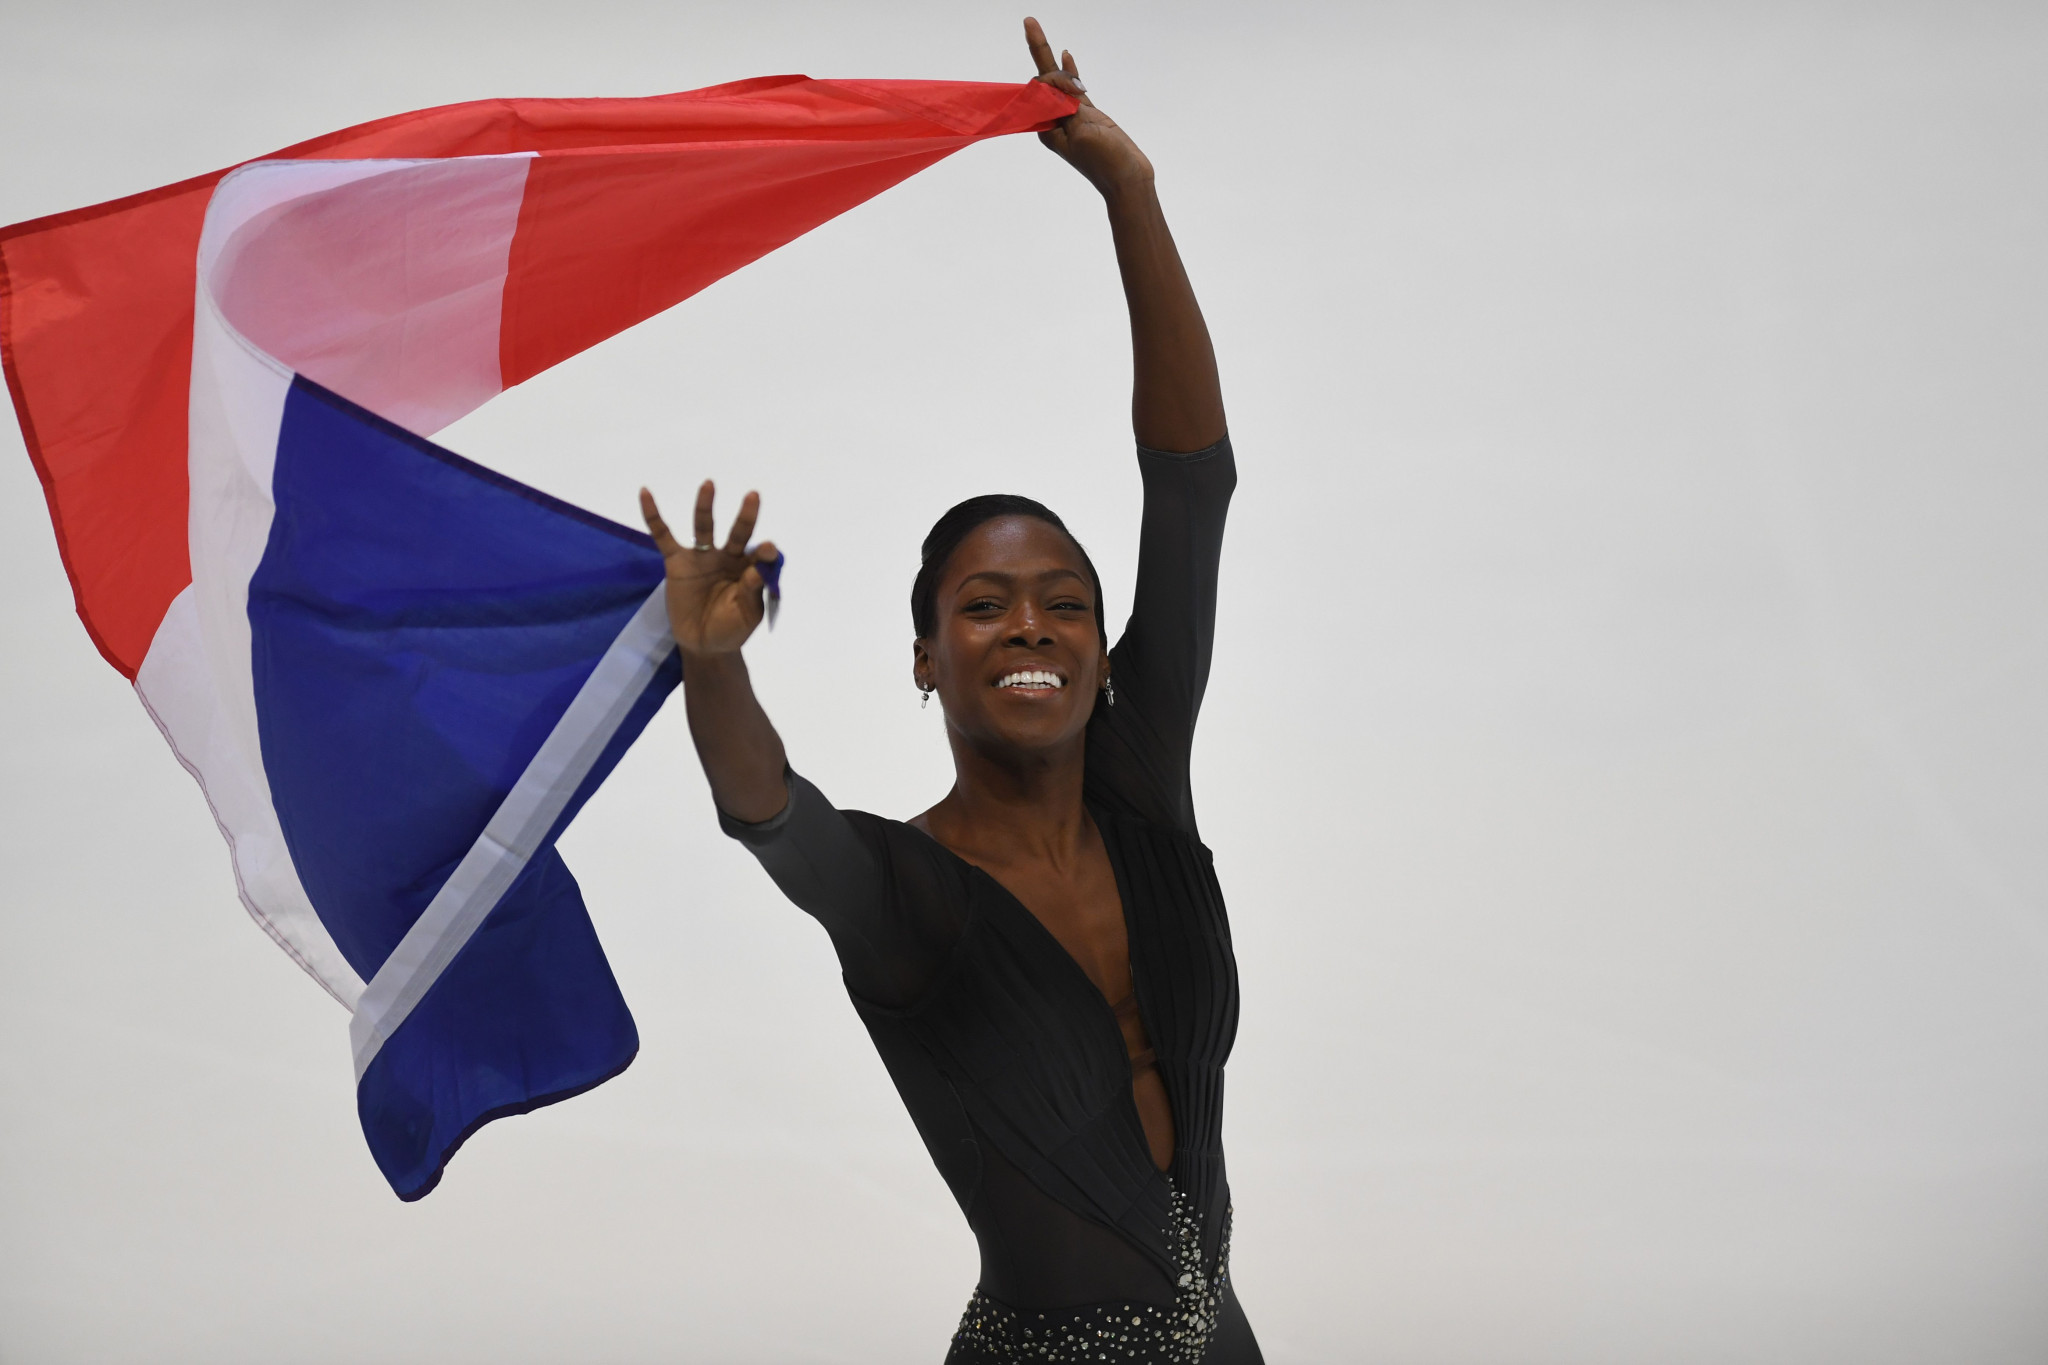 IOC approve change of nationality for figure skater James from France to Canada